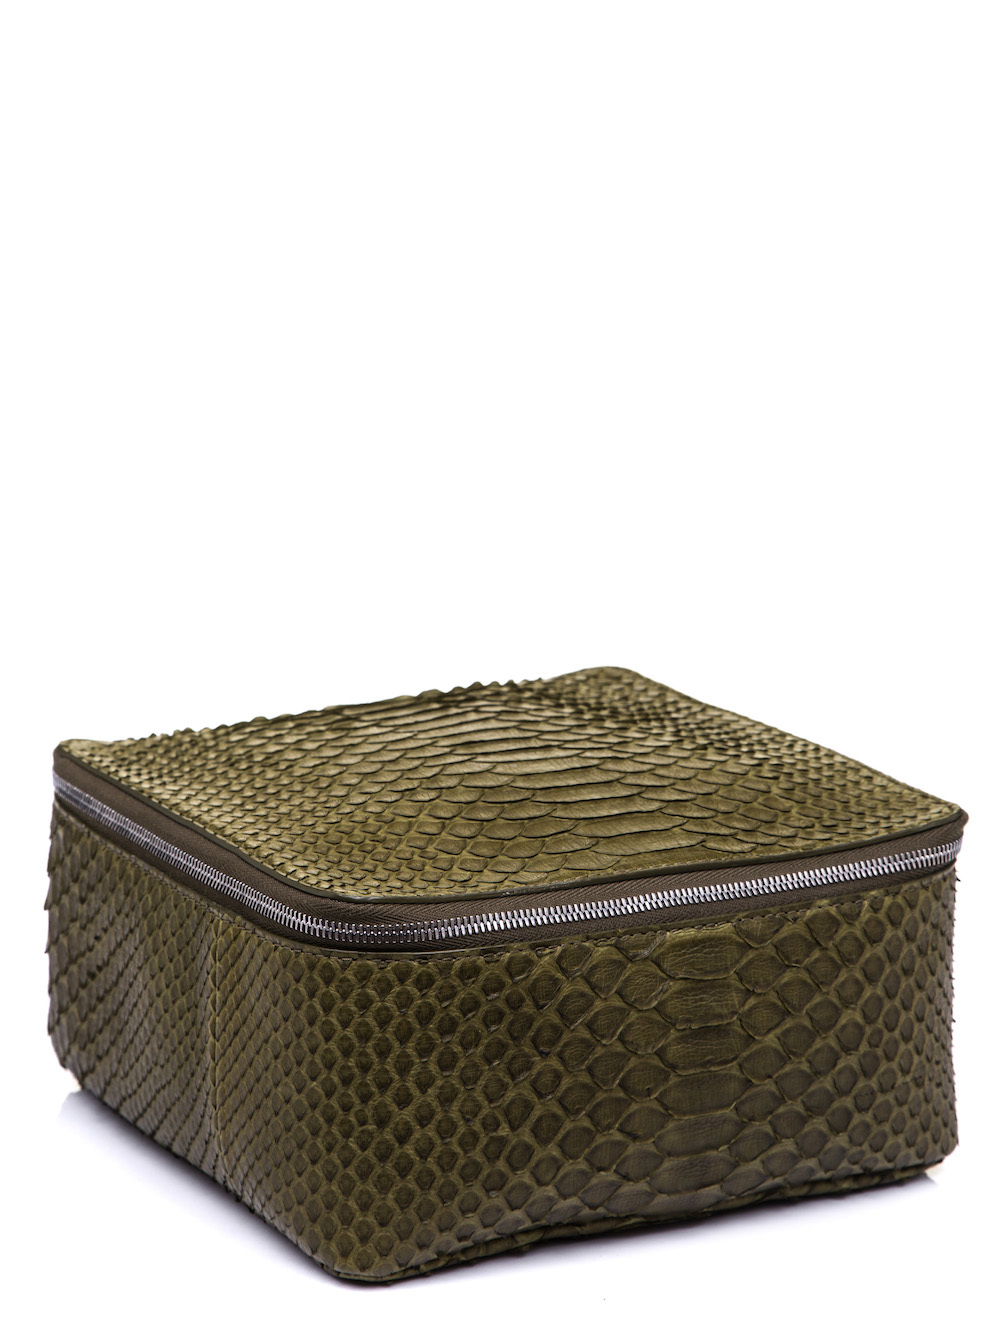 RICK OWENS BIG TOILETRY BEAUTY CASE IN DIRTY GREEN PYTHON